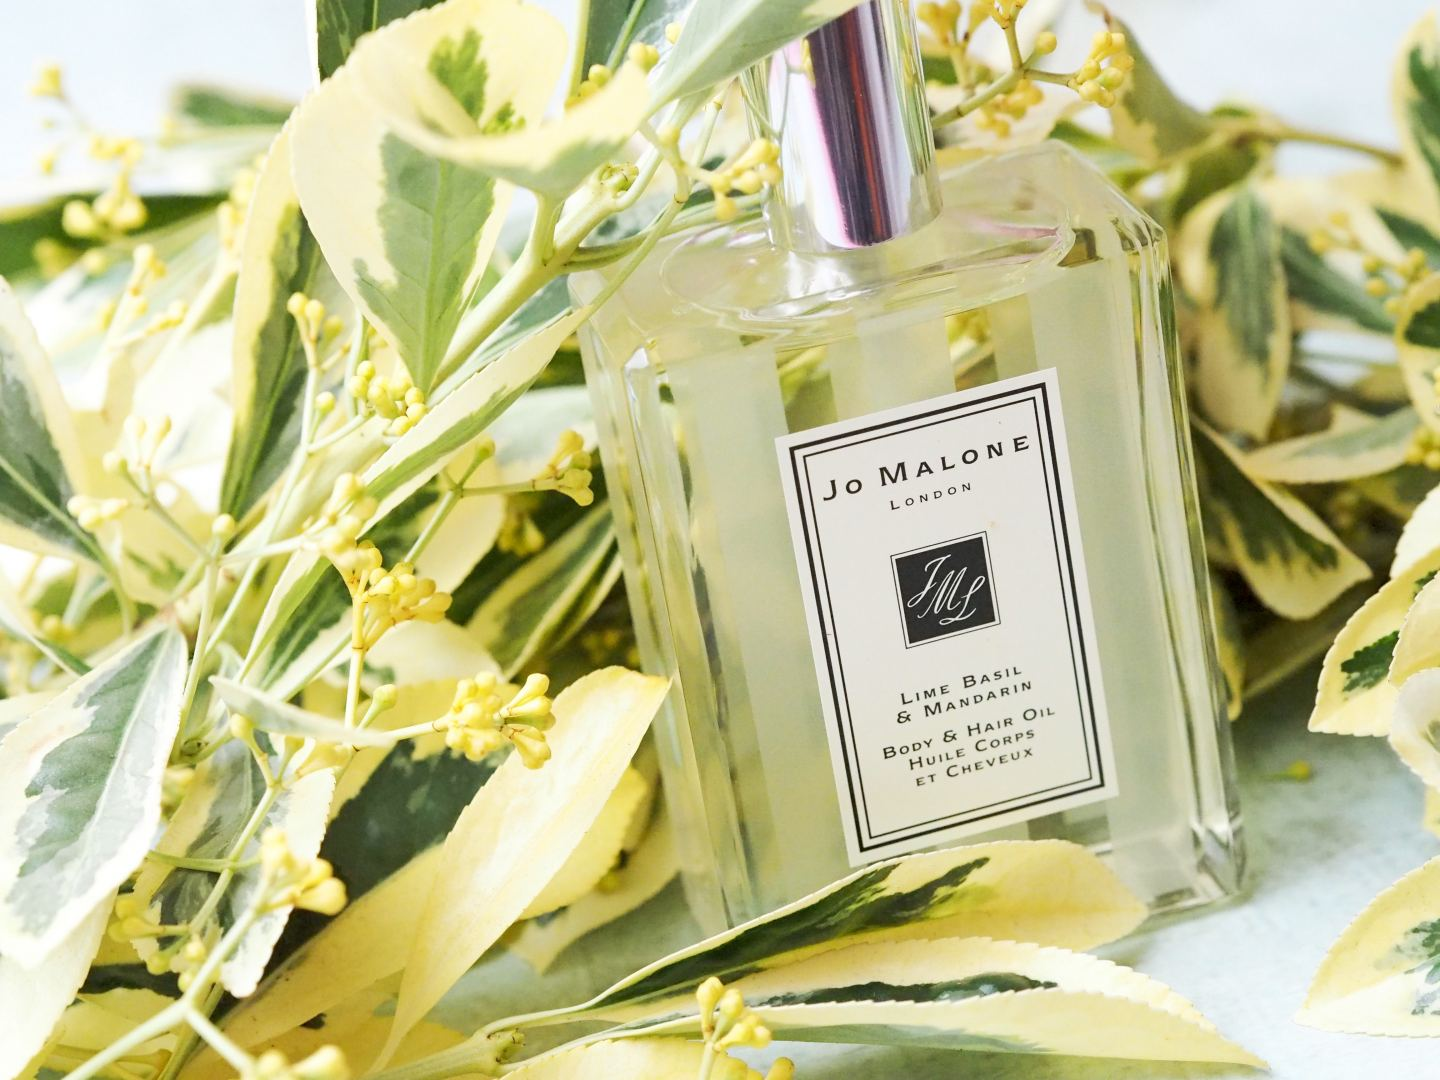 Jo Malone London Lime Basil & Mandarin Body & Hair Oil new 2018